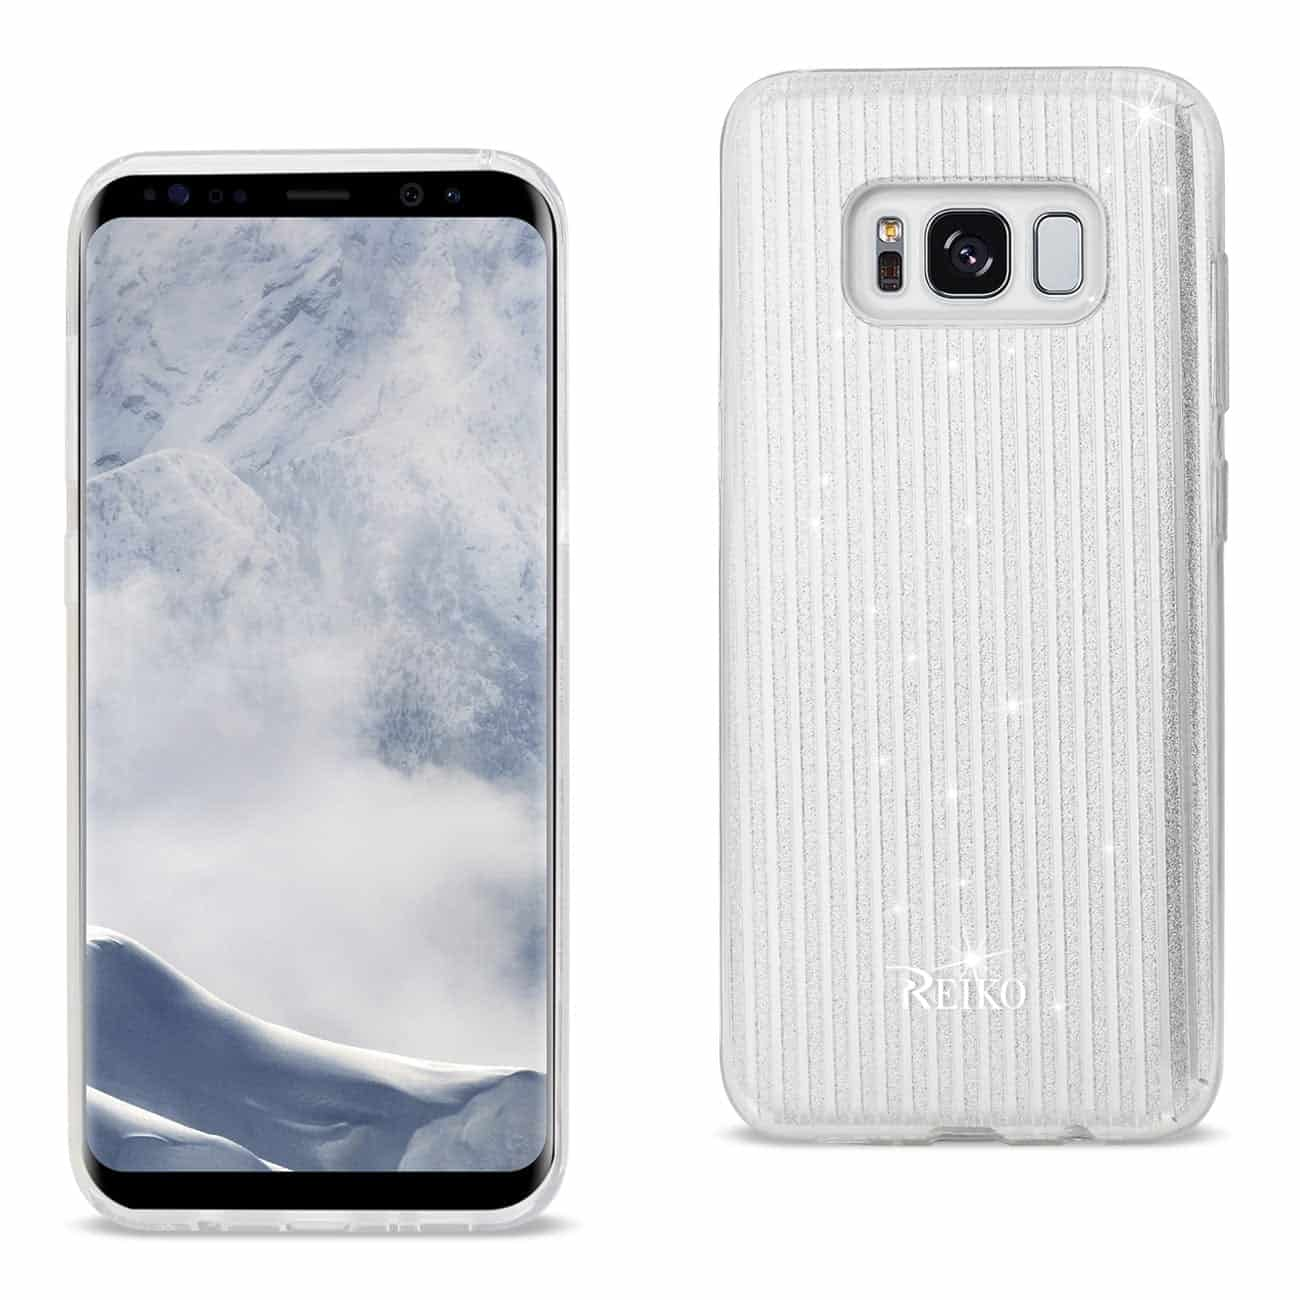 SAMSUNG GALAXY S8 EDGE/ S8 PLUS SHINE GLITTER SHIMMER STRIPE HYBRID CASE IN LINEAR SILVER